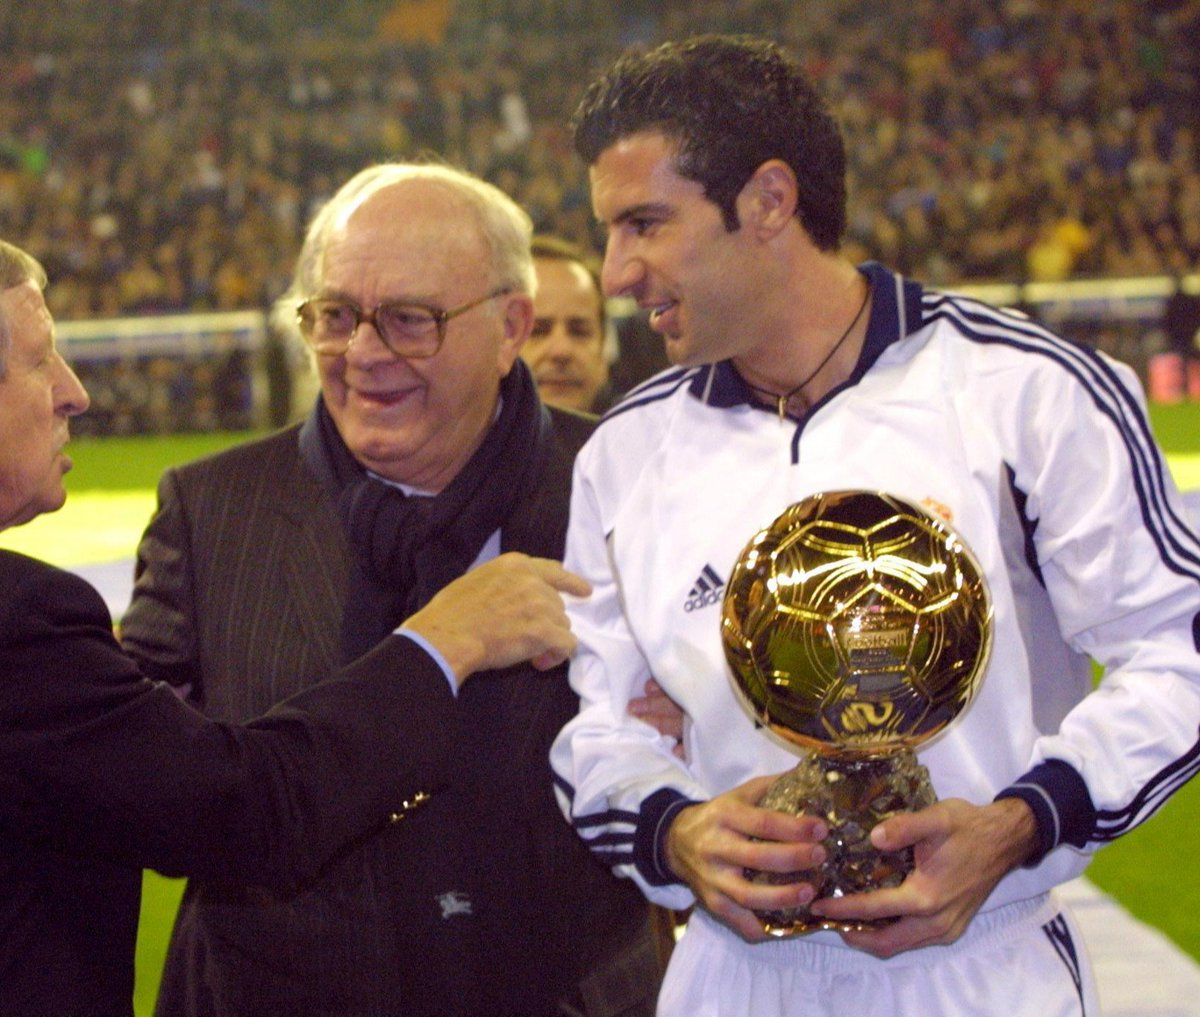 """Figo: """"Trading Barcelona for Real Madrid was the right decision"""" #RealMadrid pic.twitter.com/vMgOZvvqEs"""